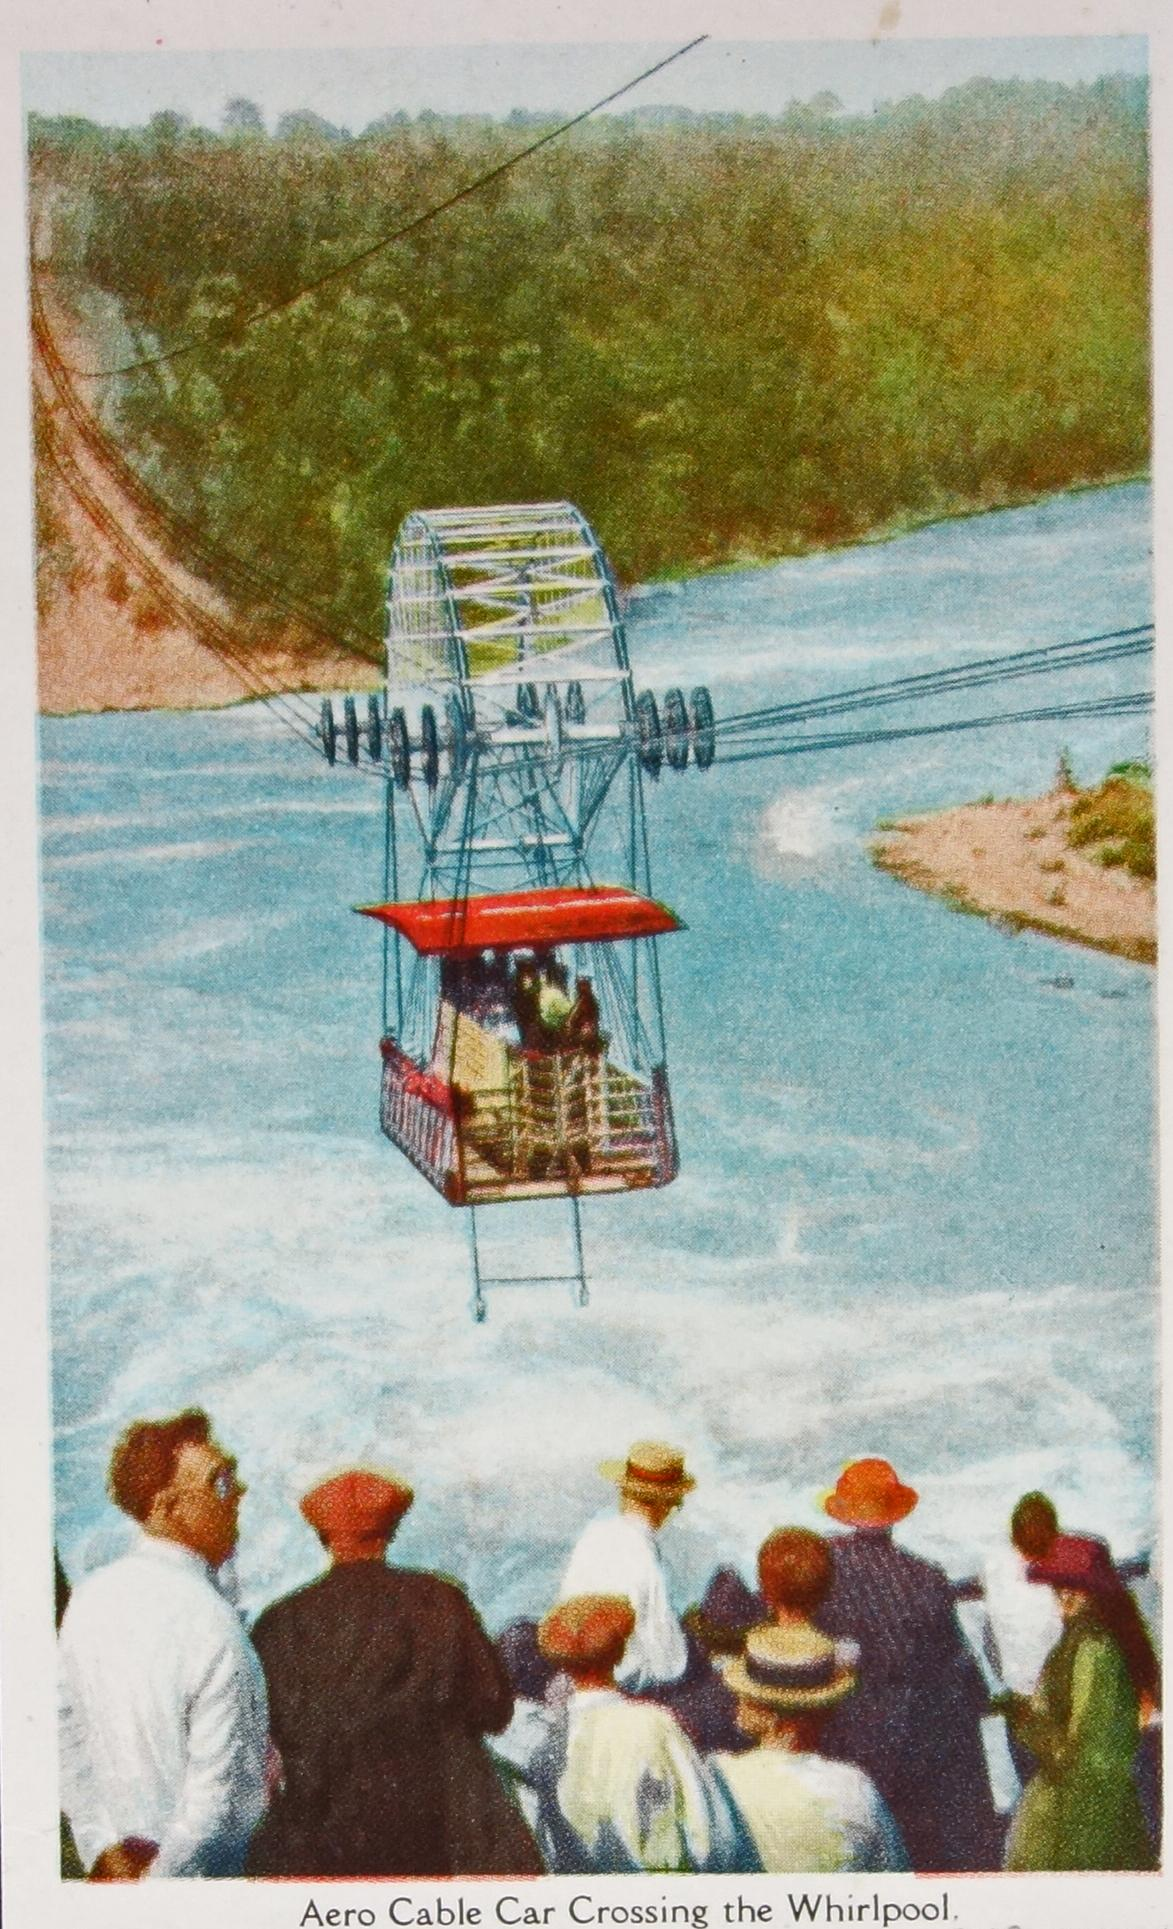 Aero Car crossing the Niagara Whirlpool Rapids. Colourised photograph with people waiting to get on the Spanish Aero Car which travels across the Whirlpool. A dozen people are in the near fore-ground while the Aero Car travels moves around the middle of the gorge. There are people on board the Aeor Car already, huddled in the middle of the car. The cables which span the gorege are drooping under the weight of the Aero Car. Large wheels of the car connect to the cable to provide sfe transit across the Whirlpool. The Aero Car is bright red. The churning water below is mostly white with a bit of blue and the ground around the River is rocky.   At the bottom of the image is typed